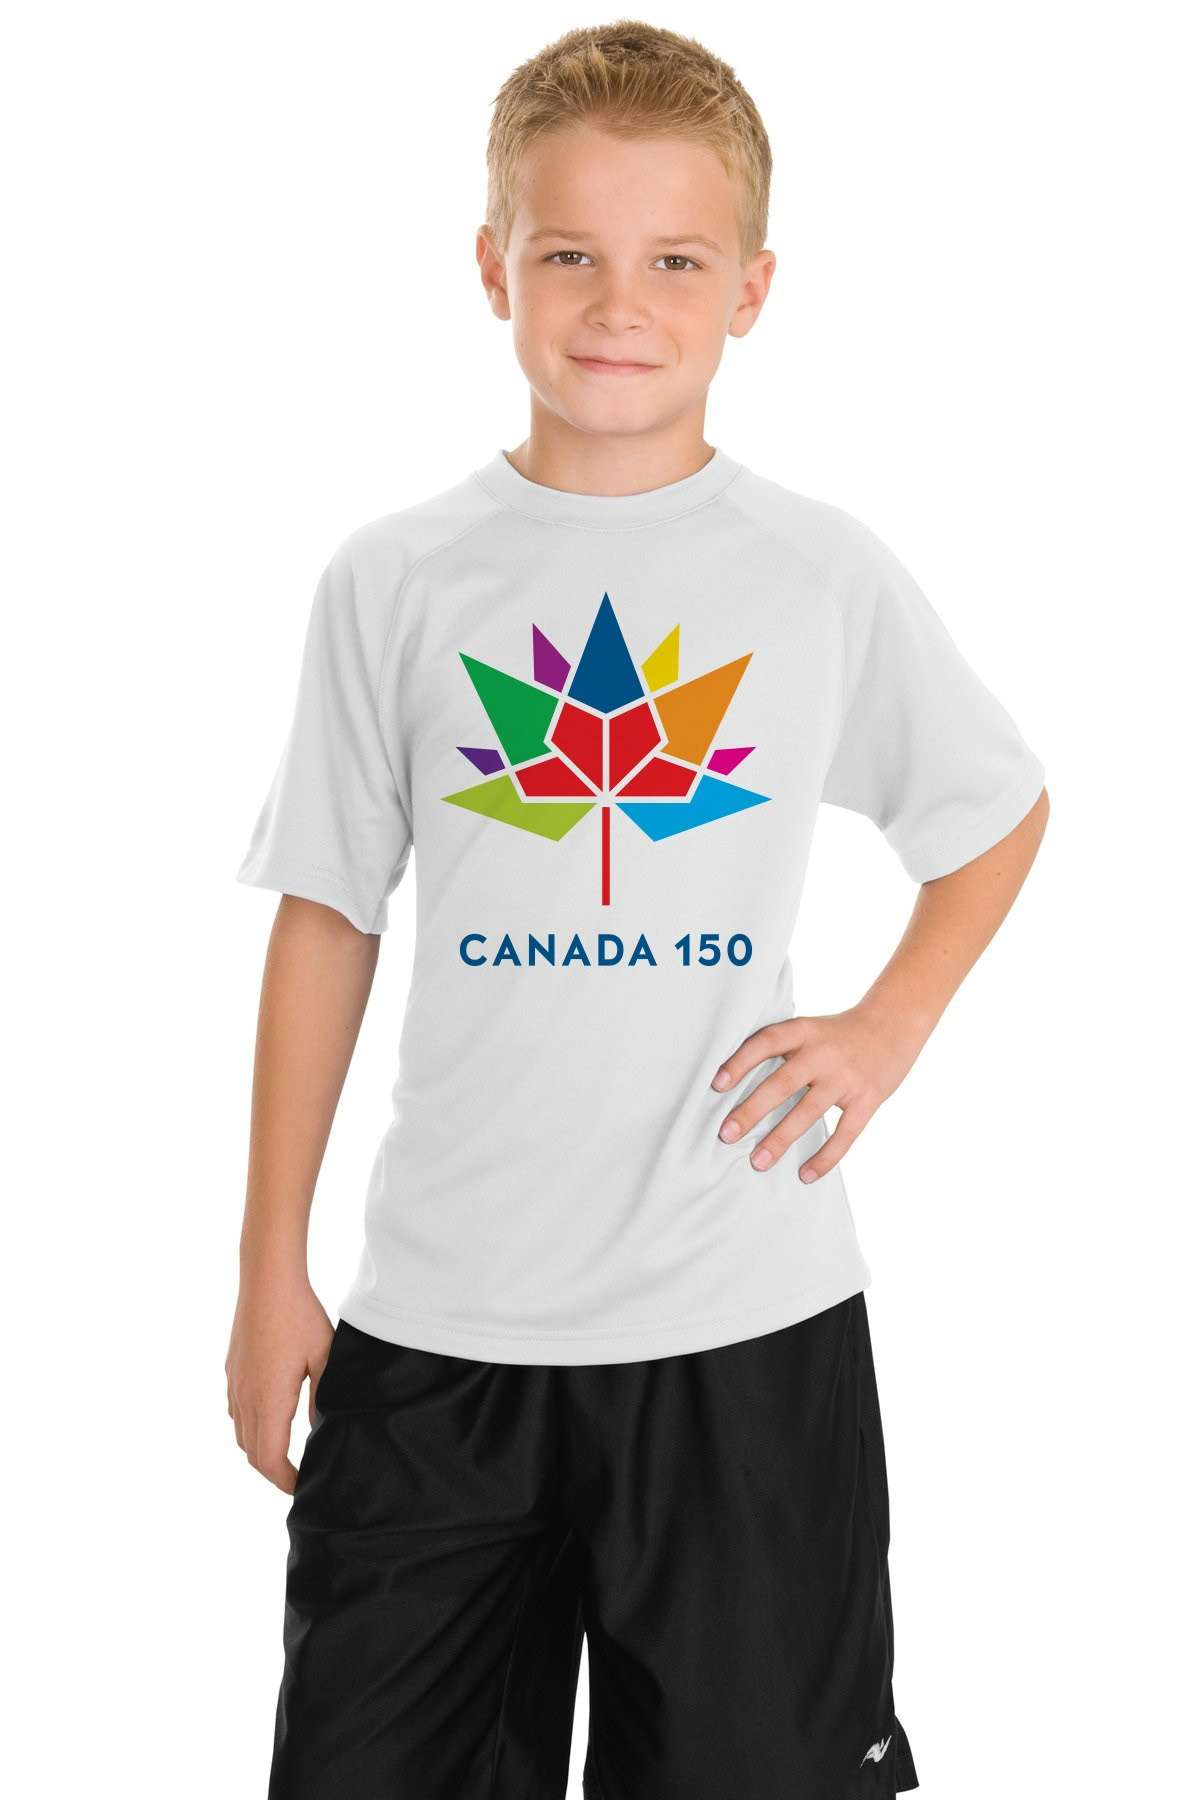 Canada 150 T Shirt Aurora Flags Banners Inc